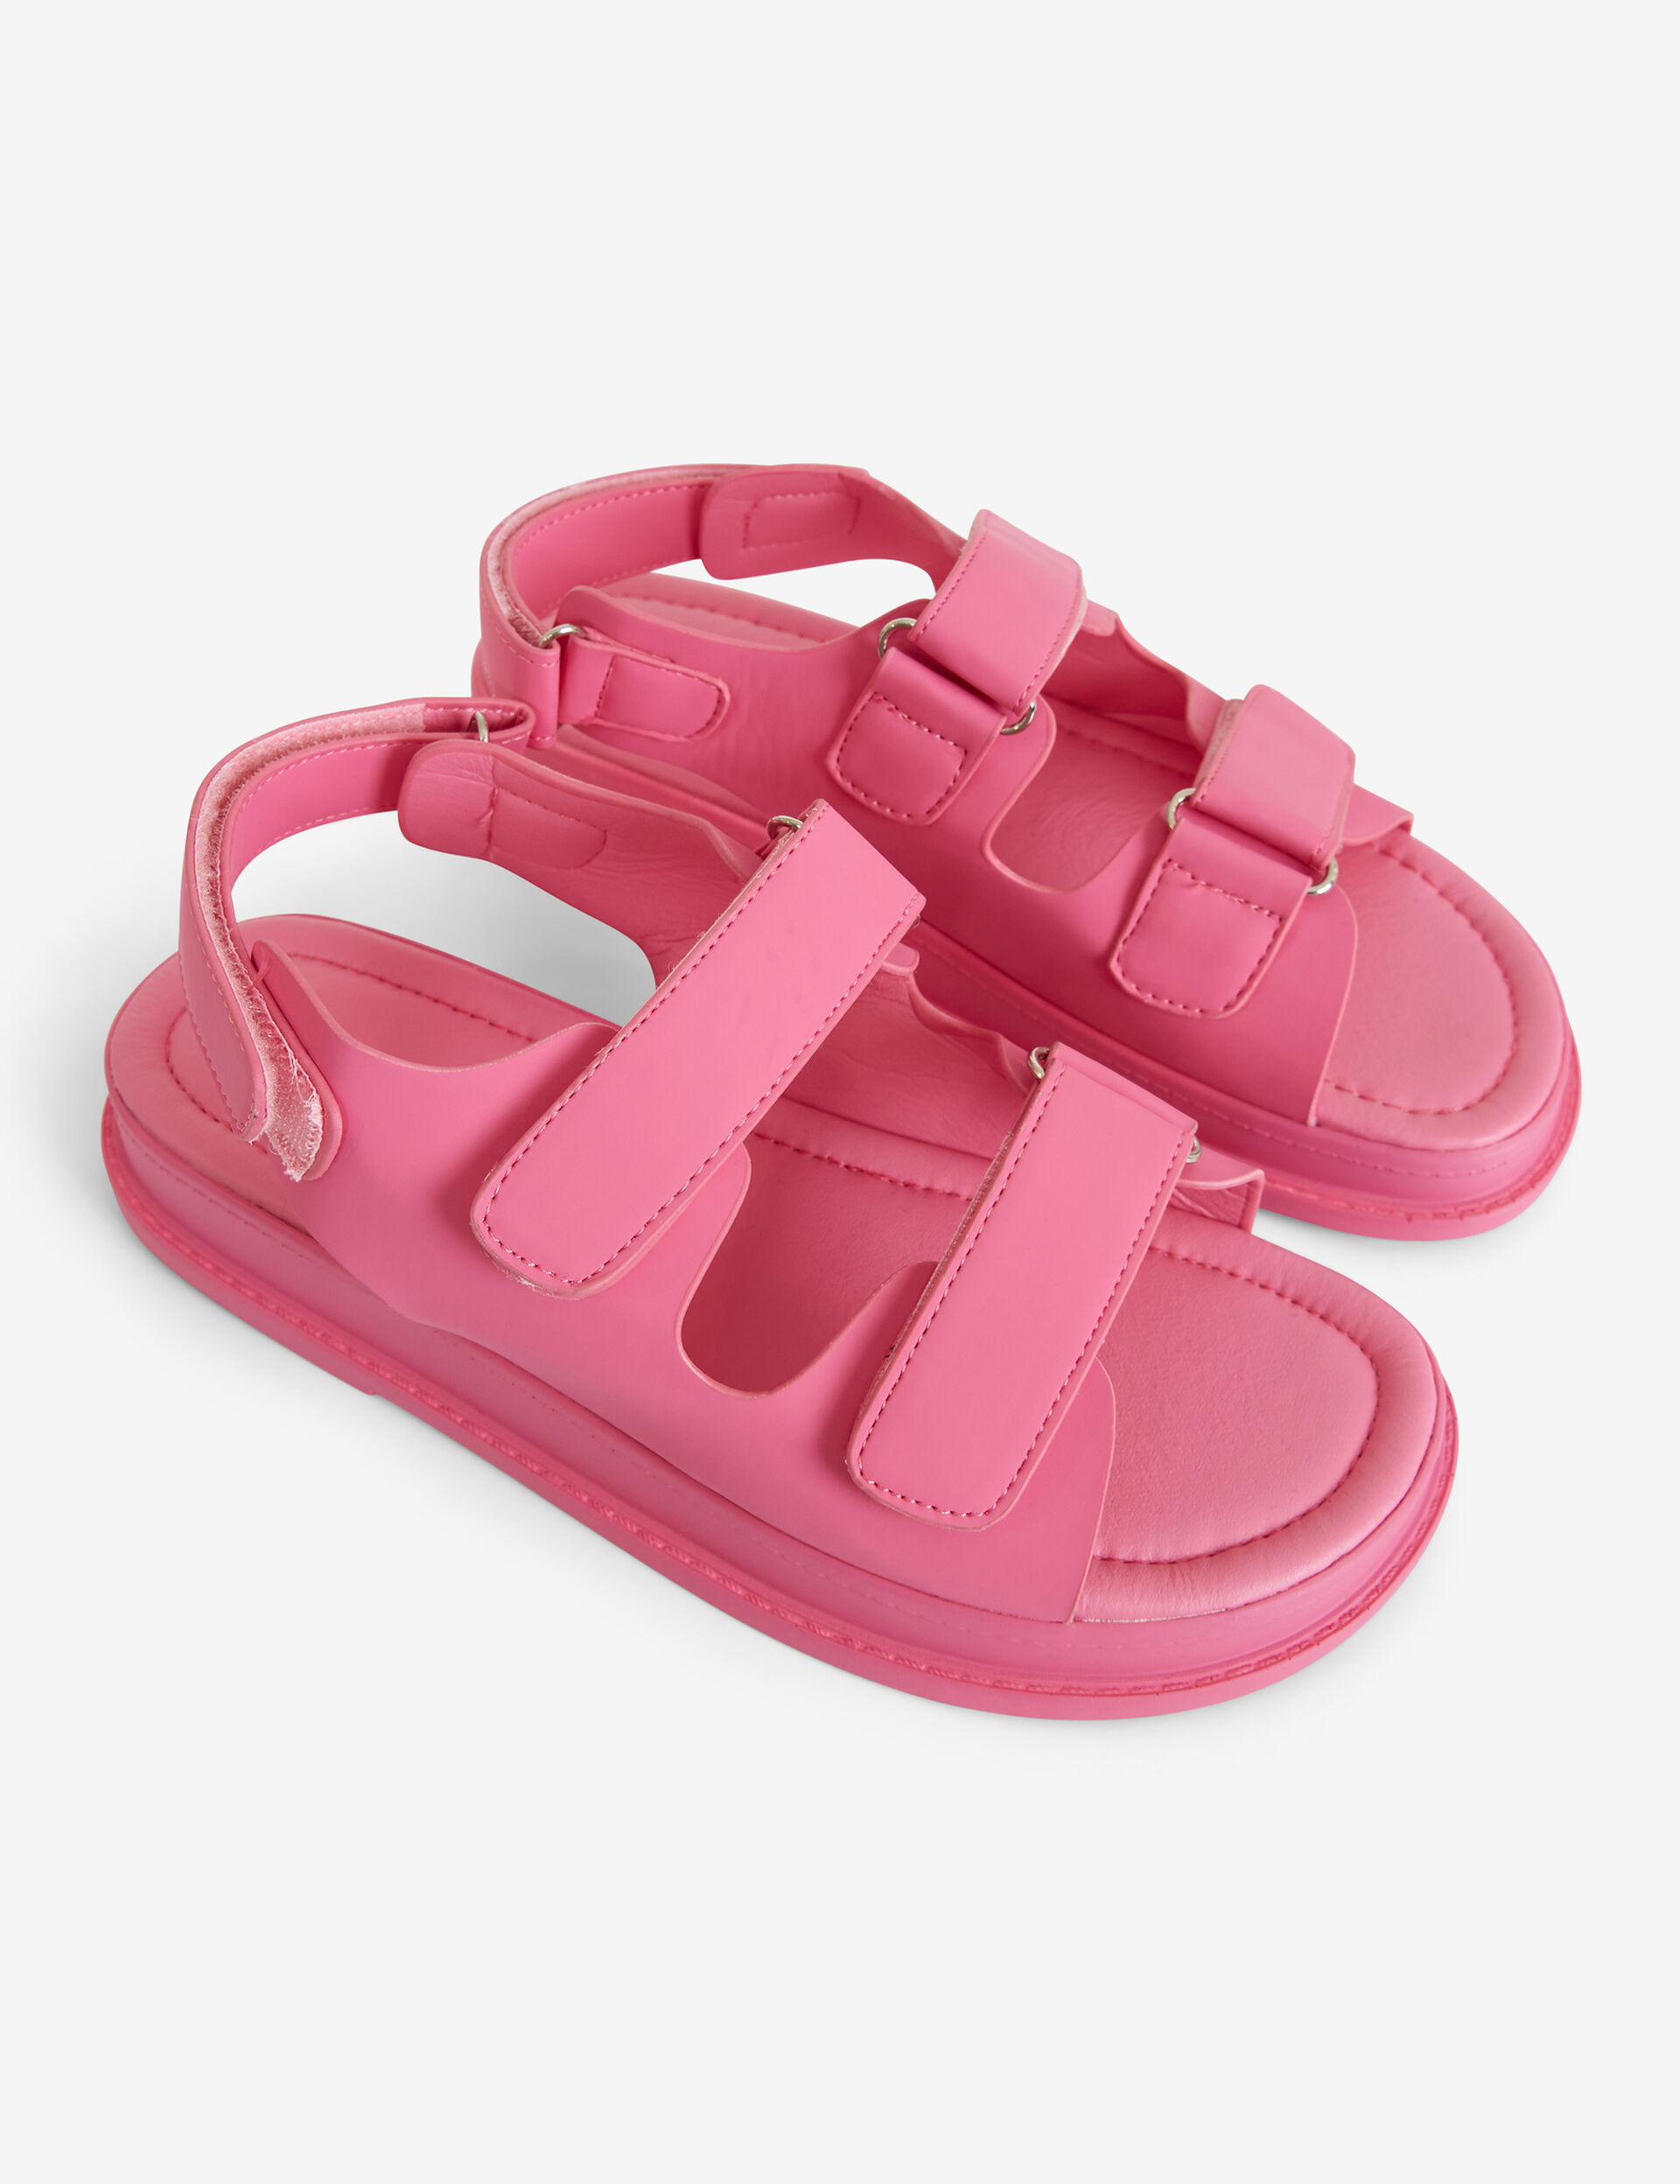 Imitation-leather sandals with Velcro